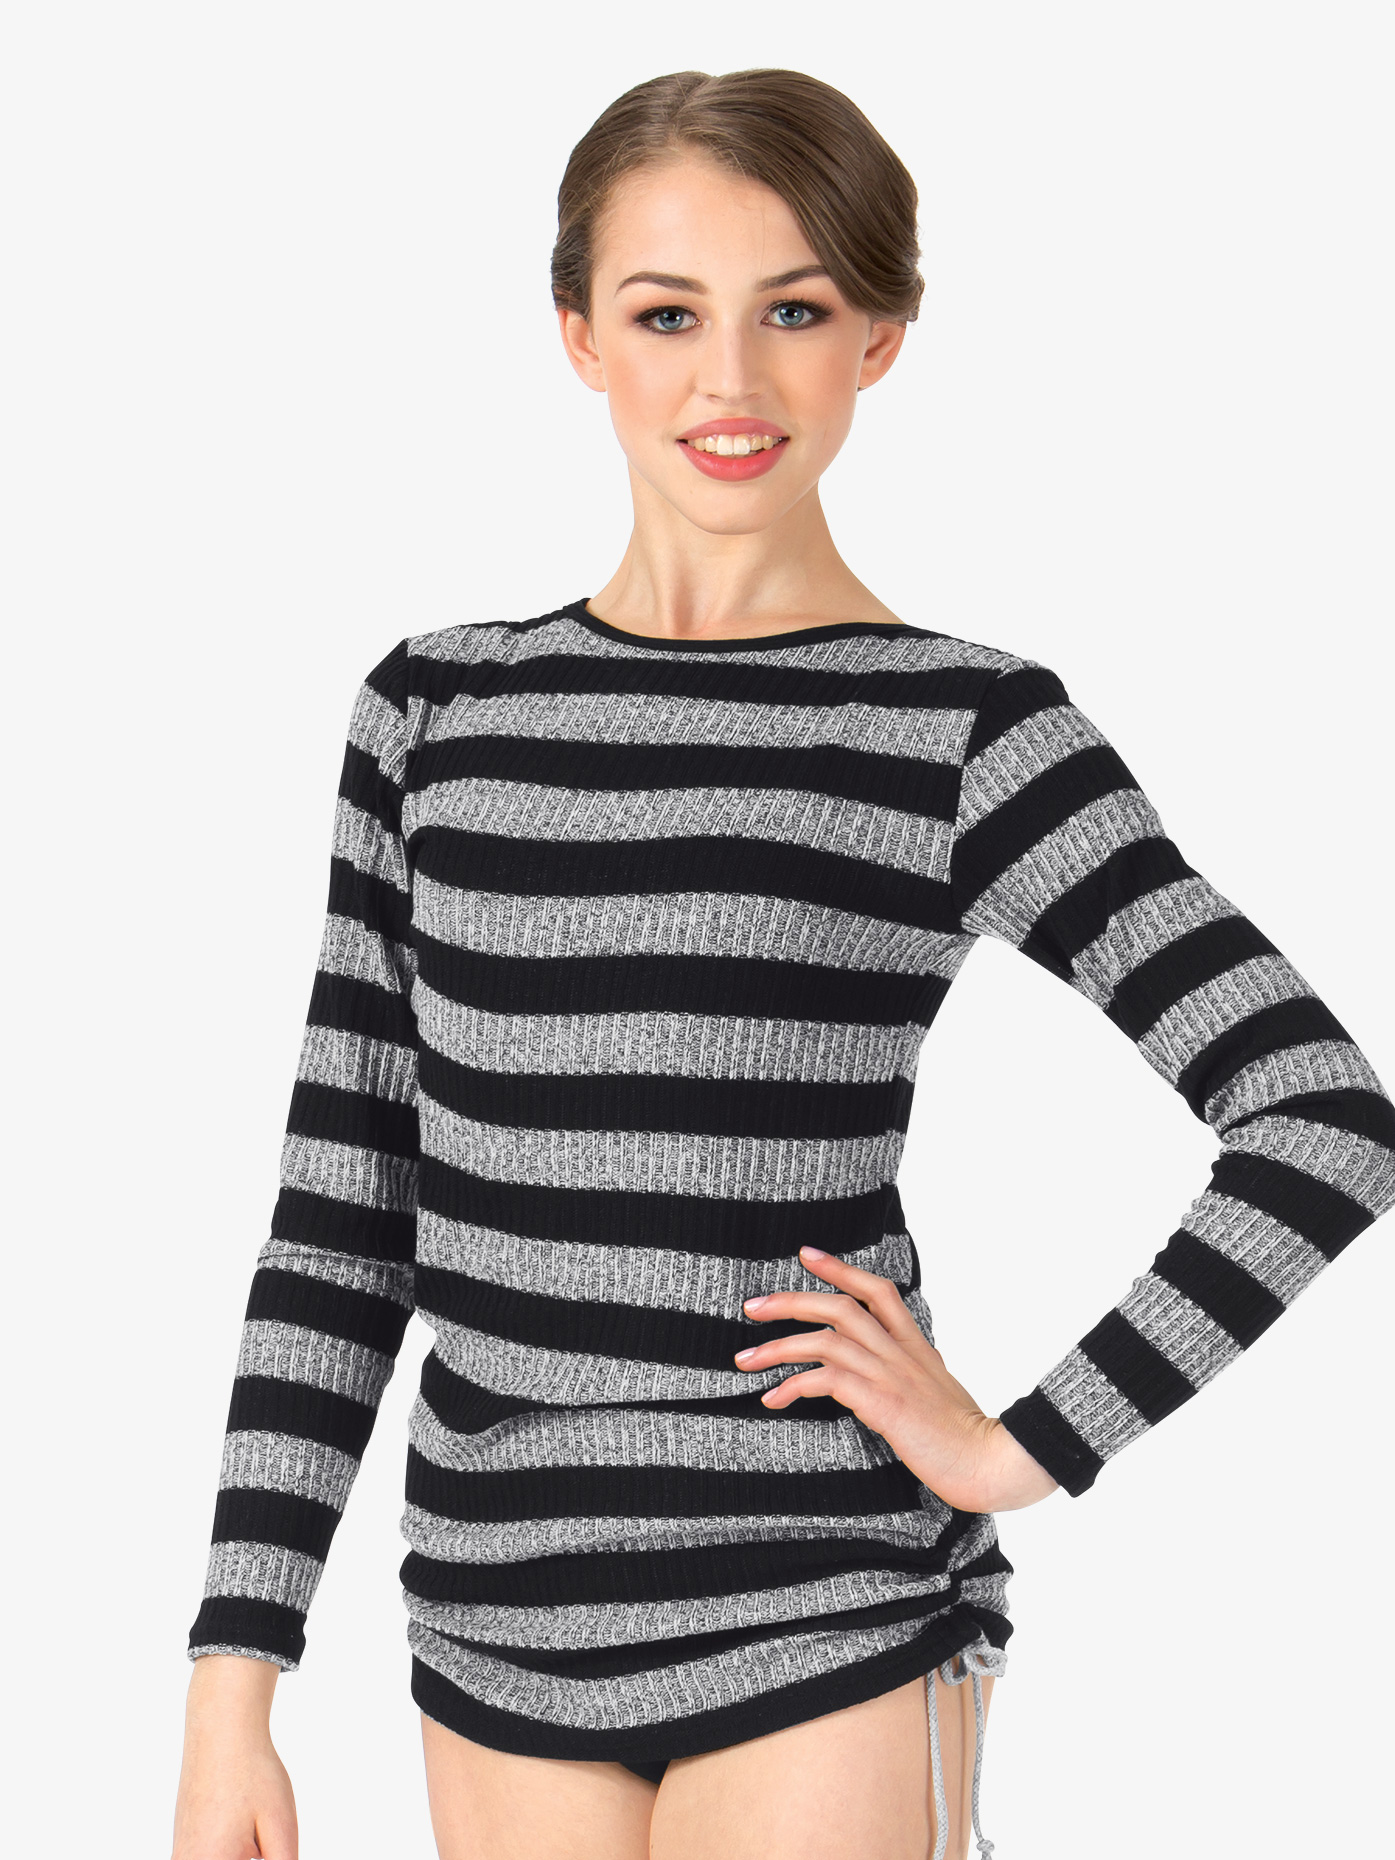 Body Wrappers Adult Striped Knit Boatneck Warm Up Top 5170